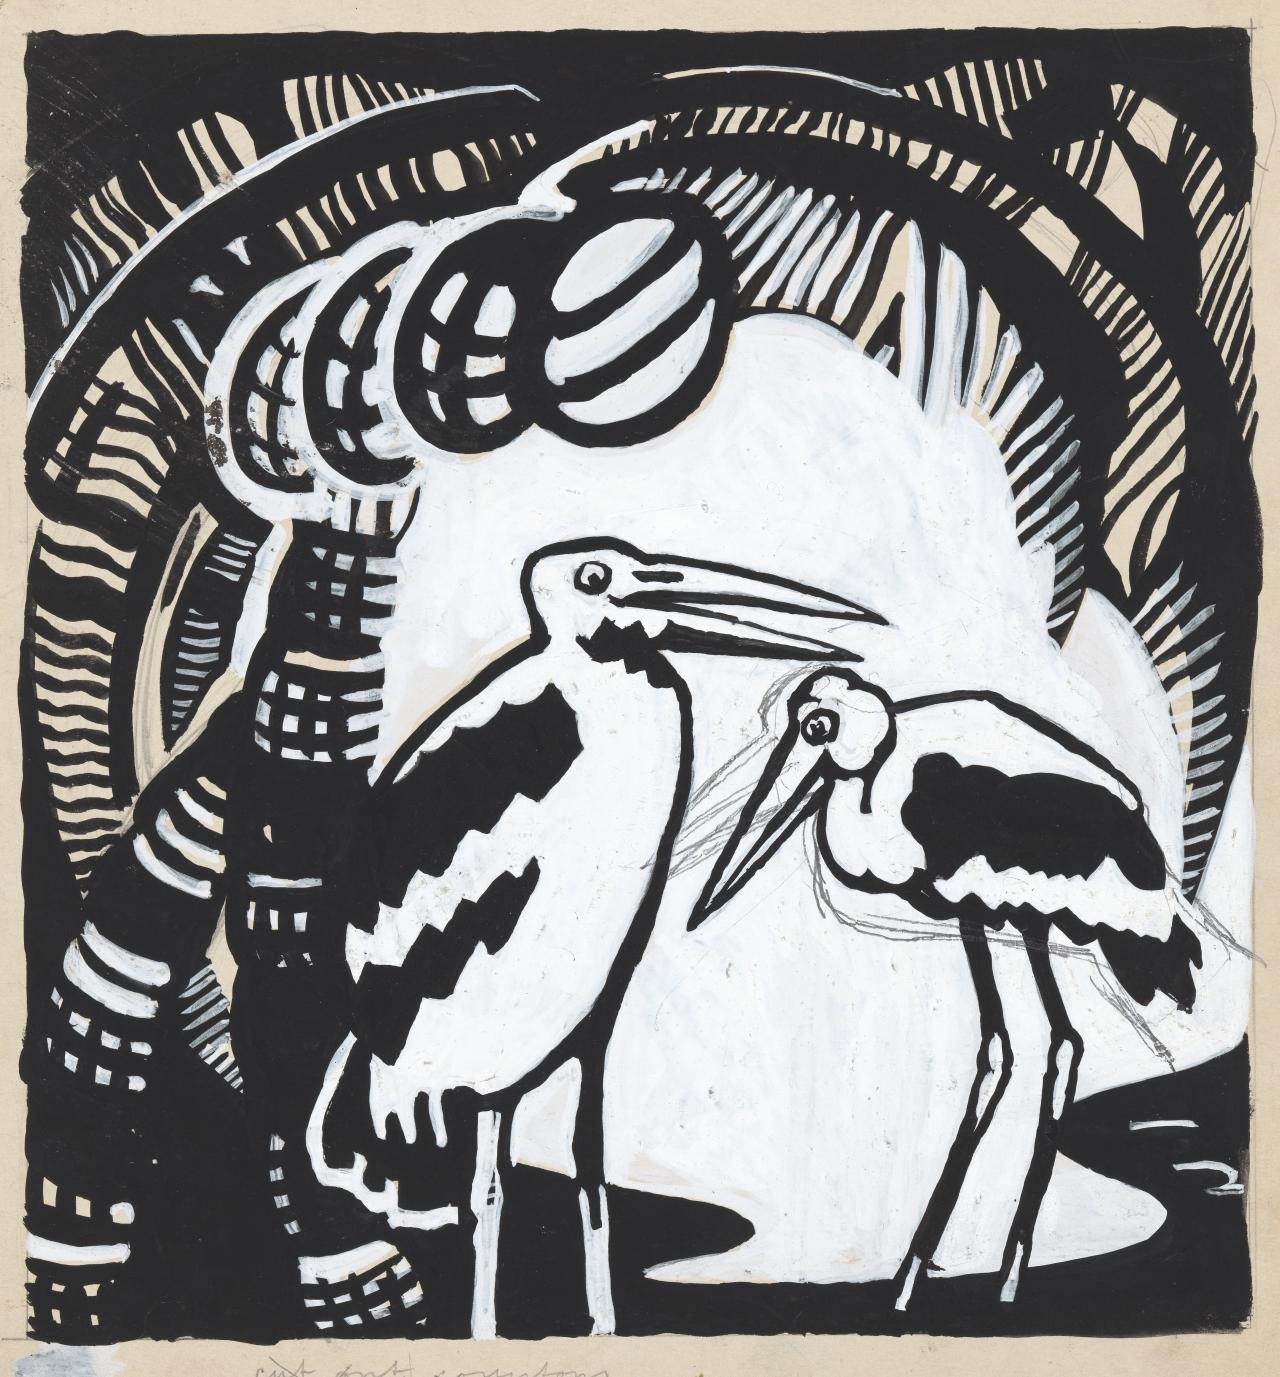 Two storks in patterned background